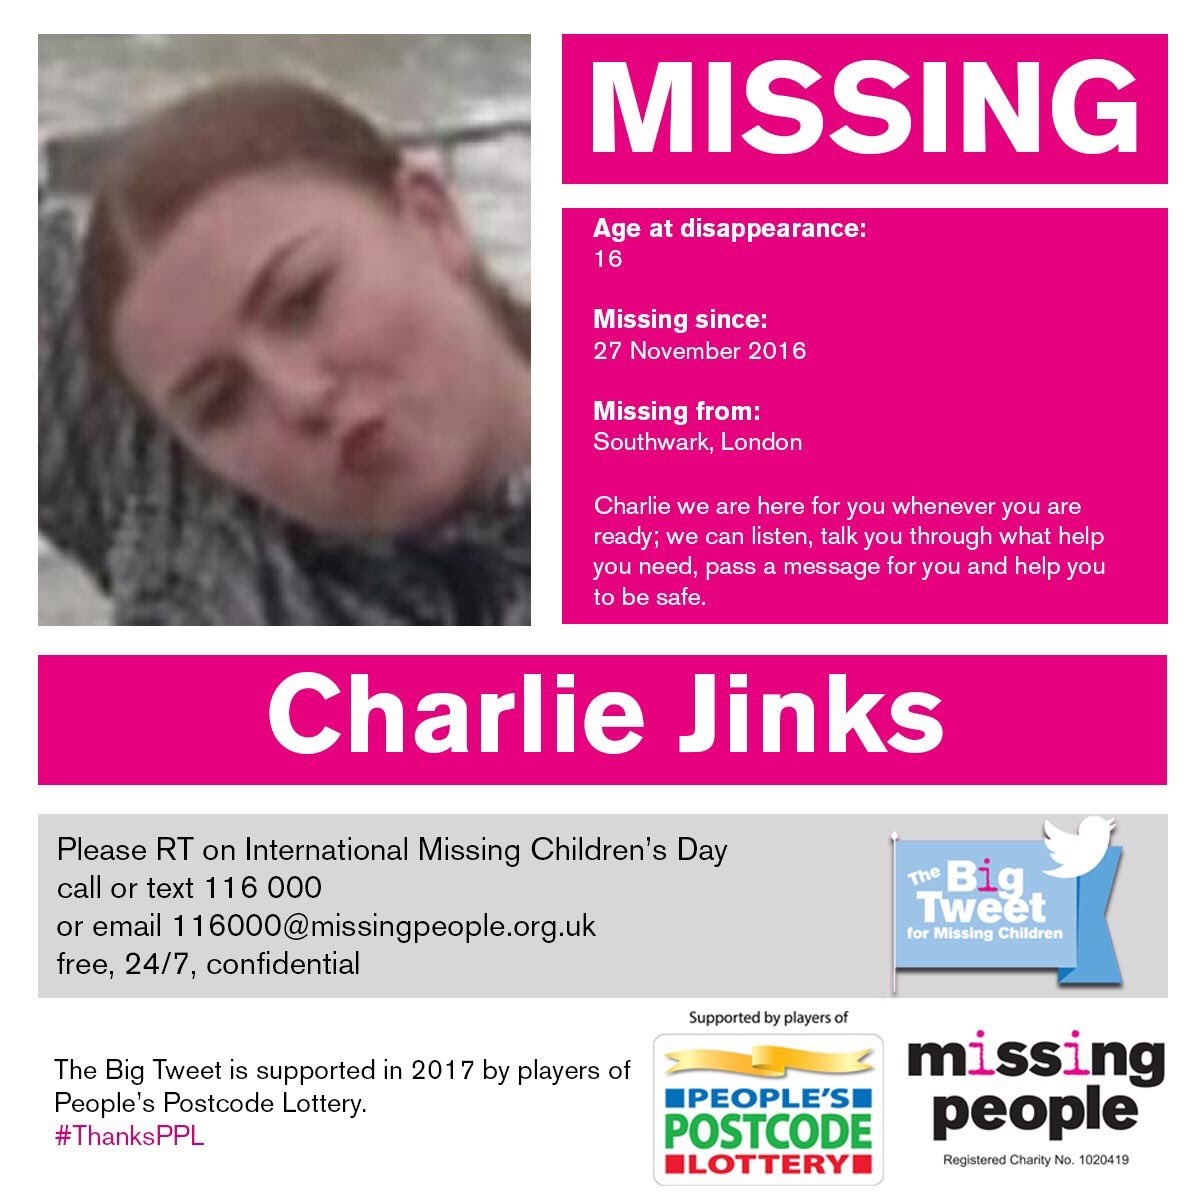 Today we&#39;re supporting #TeamBigTweet with @missingpeople  for International Missing Children&#39;s Day.  #Charlie #1community #247Volunteers<br>http://pic.twitter.com/qT2pEz5iJL